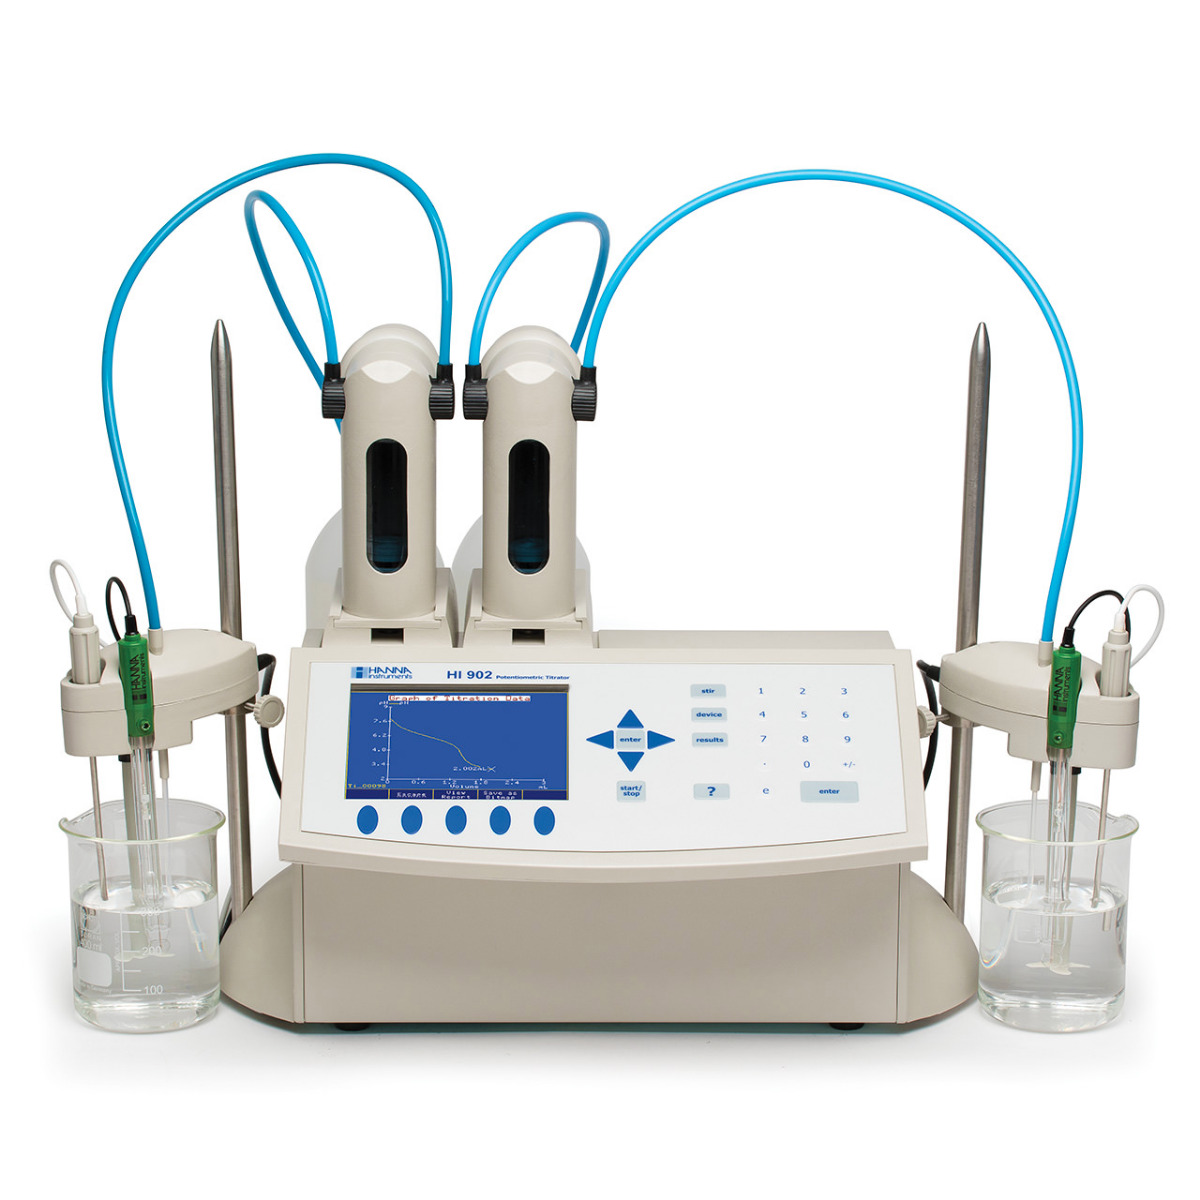 Automatic Potentiometric (pH/mV/ISE) Titration System - HI902C